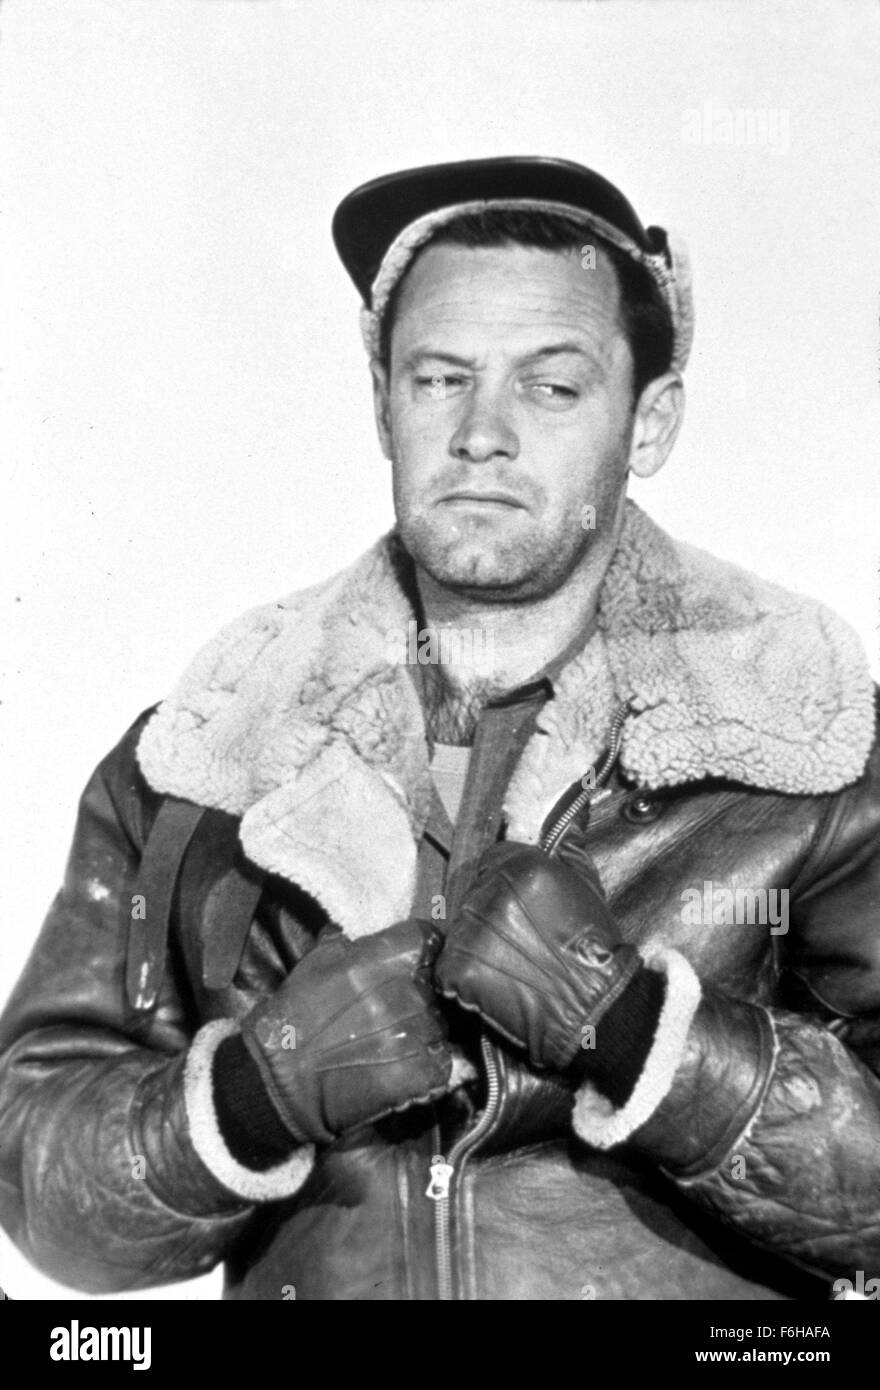 1953, Film Title: STALAG 17, Director: BILLY WILDER, Pictured: 1953, AWARDS - ACADEMY, BEST ACTOR, WILLIAM HOLDEN, - Stock Image